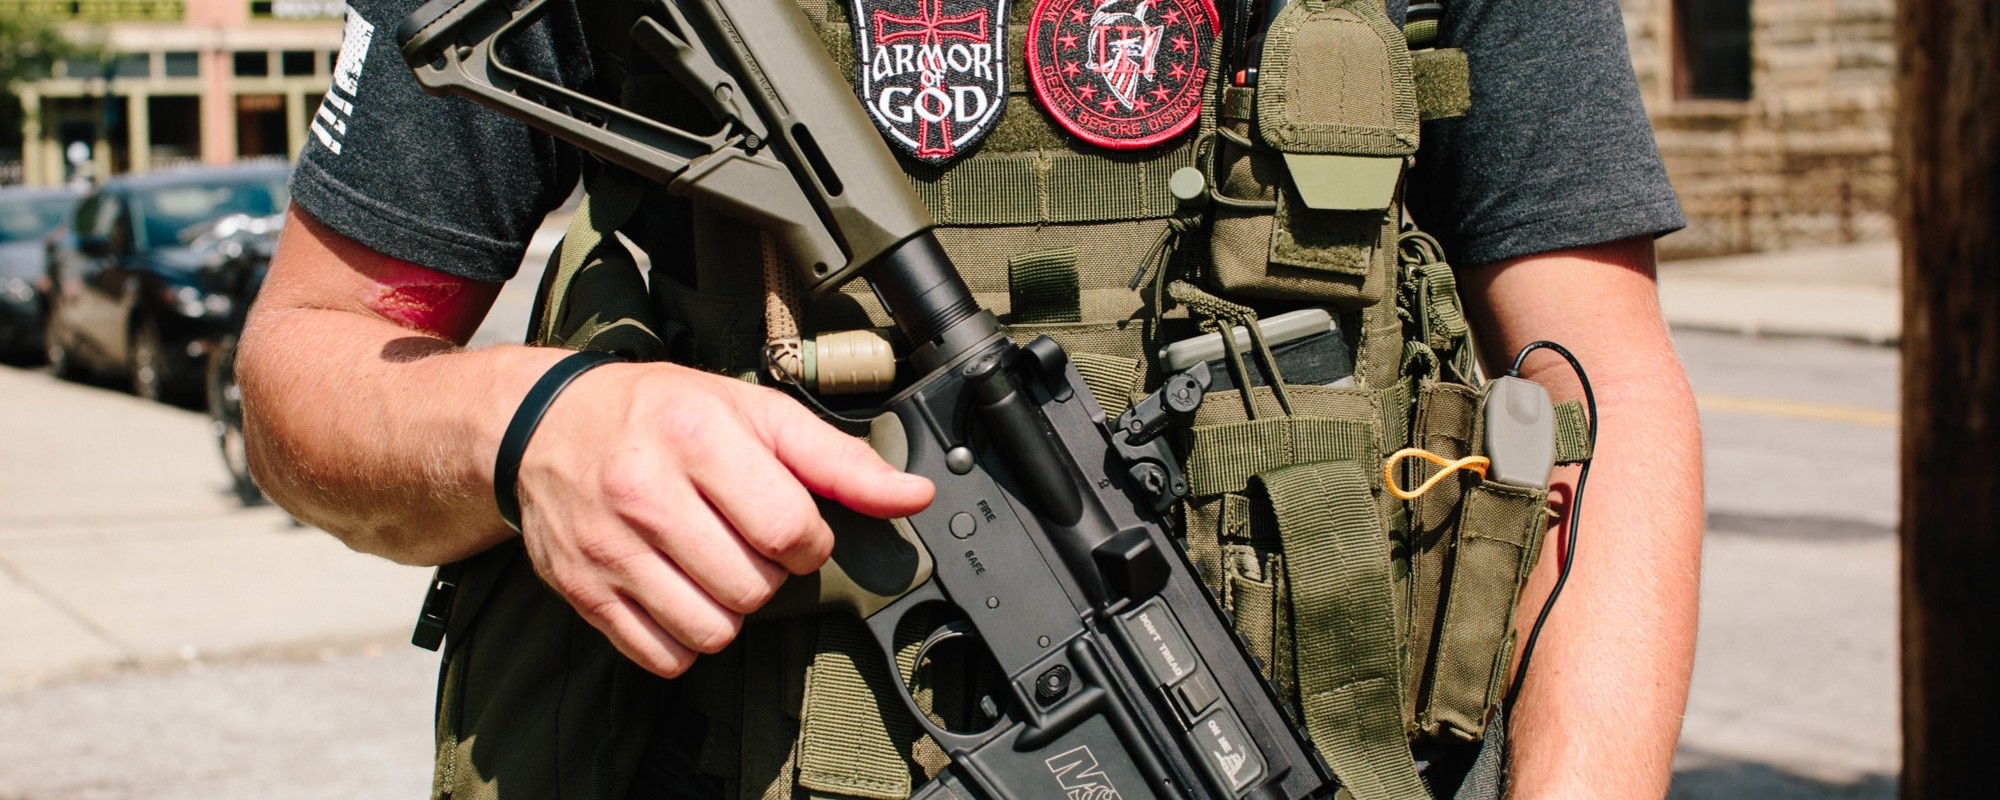 This Militia Group Walked Around the RNC with AR-15s, AK-47s, and G3s